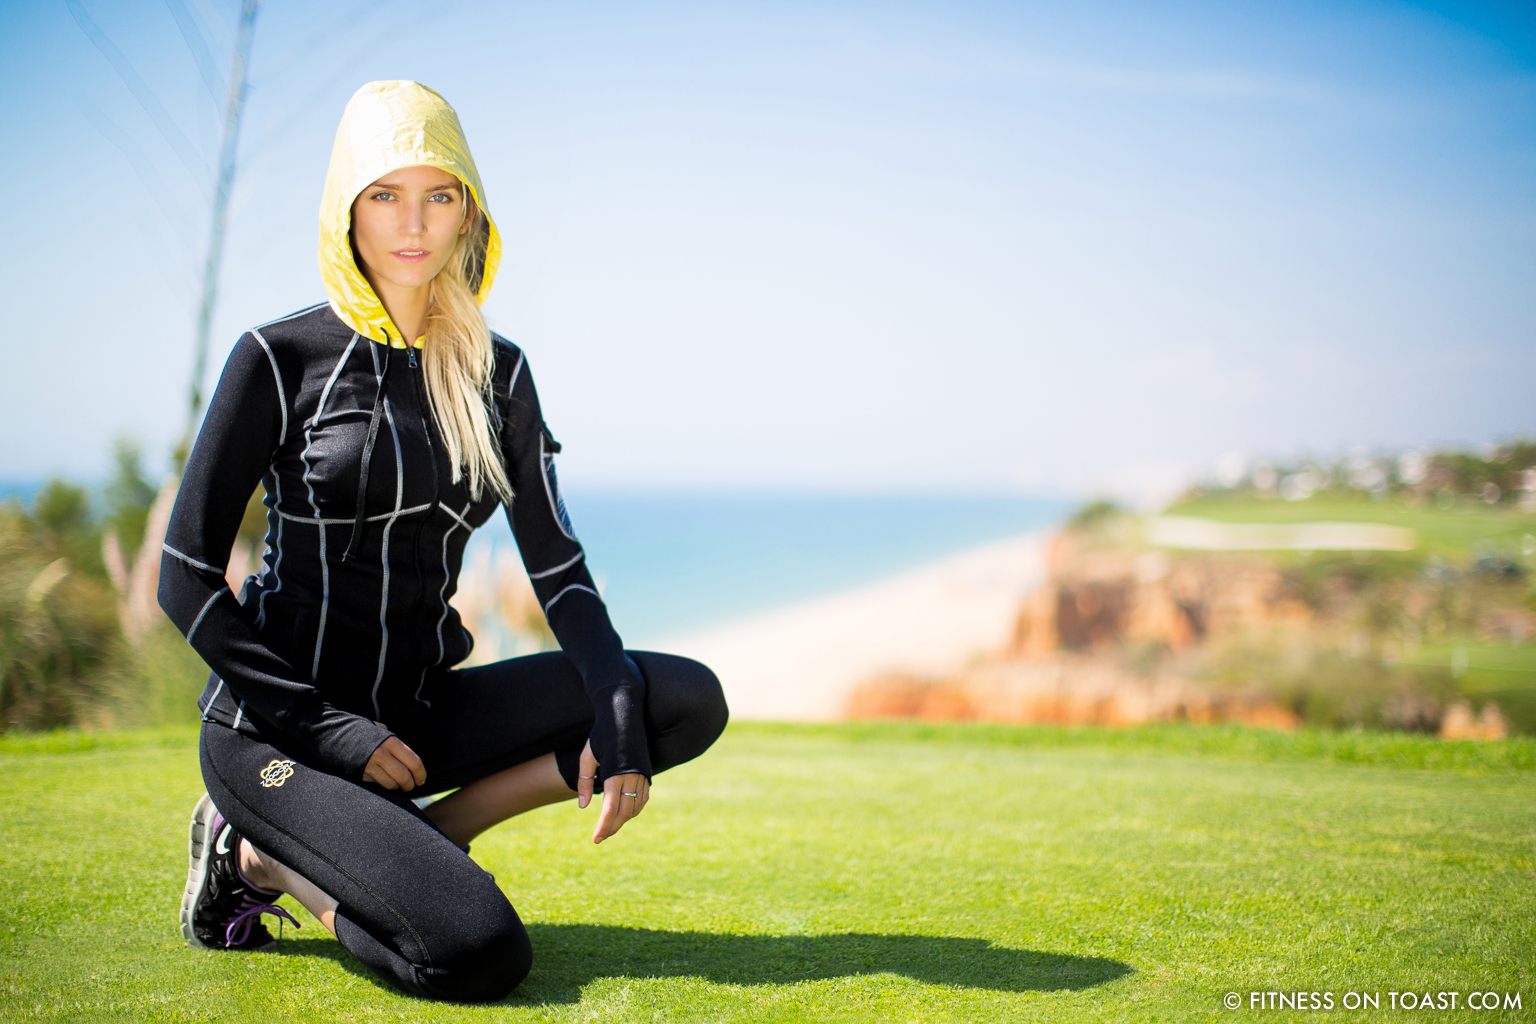 Portugal Algarve Zaggora Running Sports Fitness Girl Faya Fitness On Toast Run Val De Lobo Royal Golf Course Blog-5